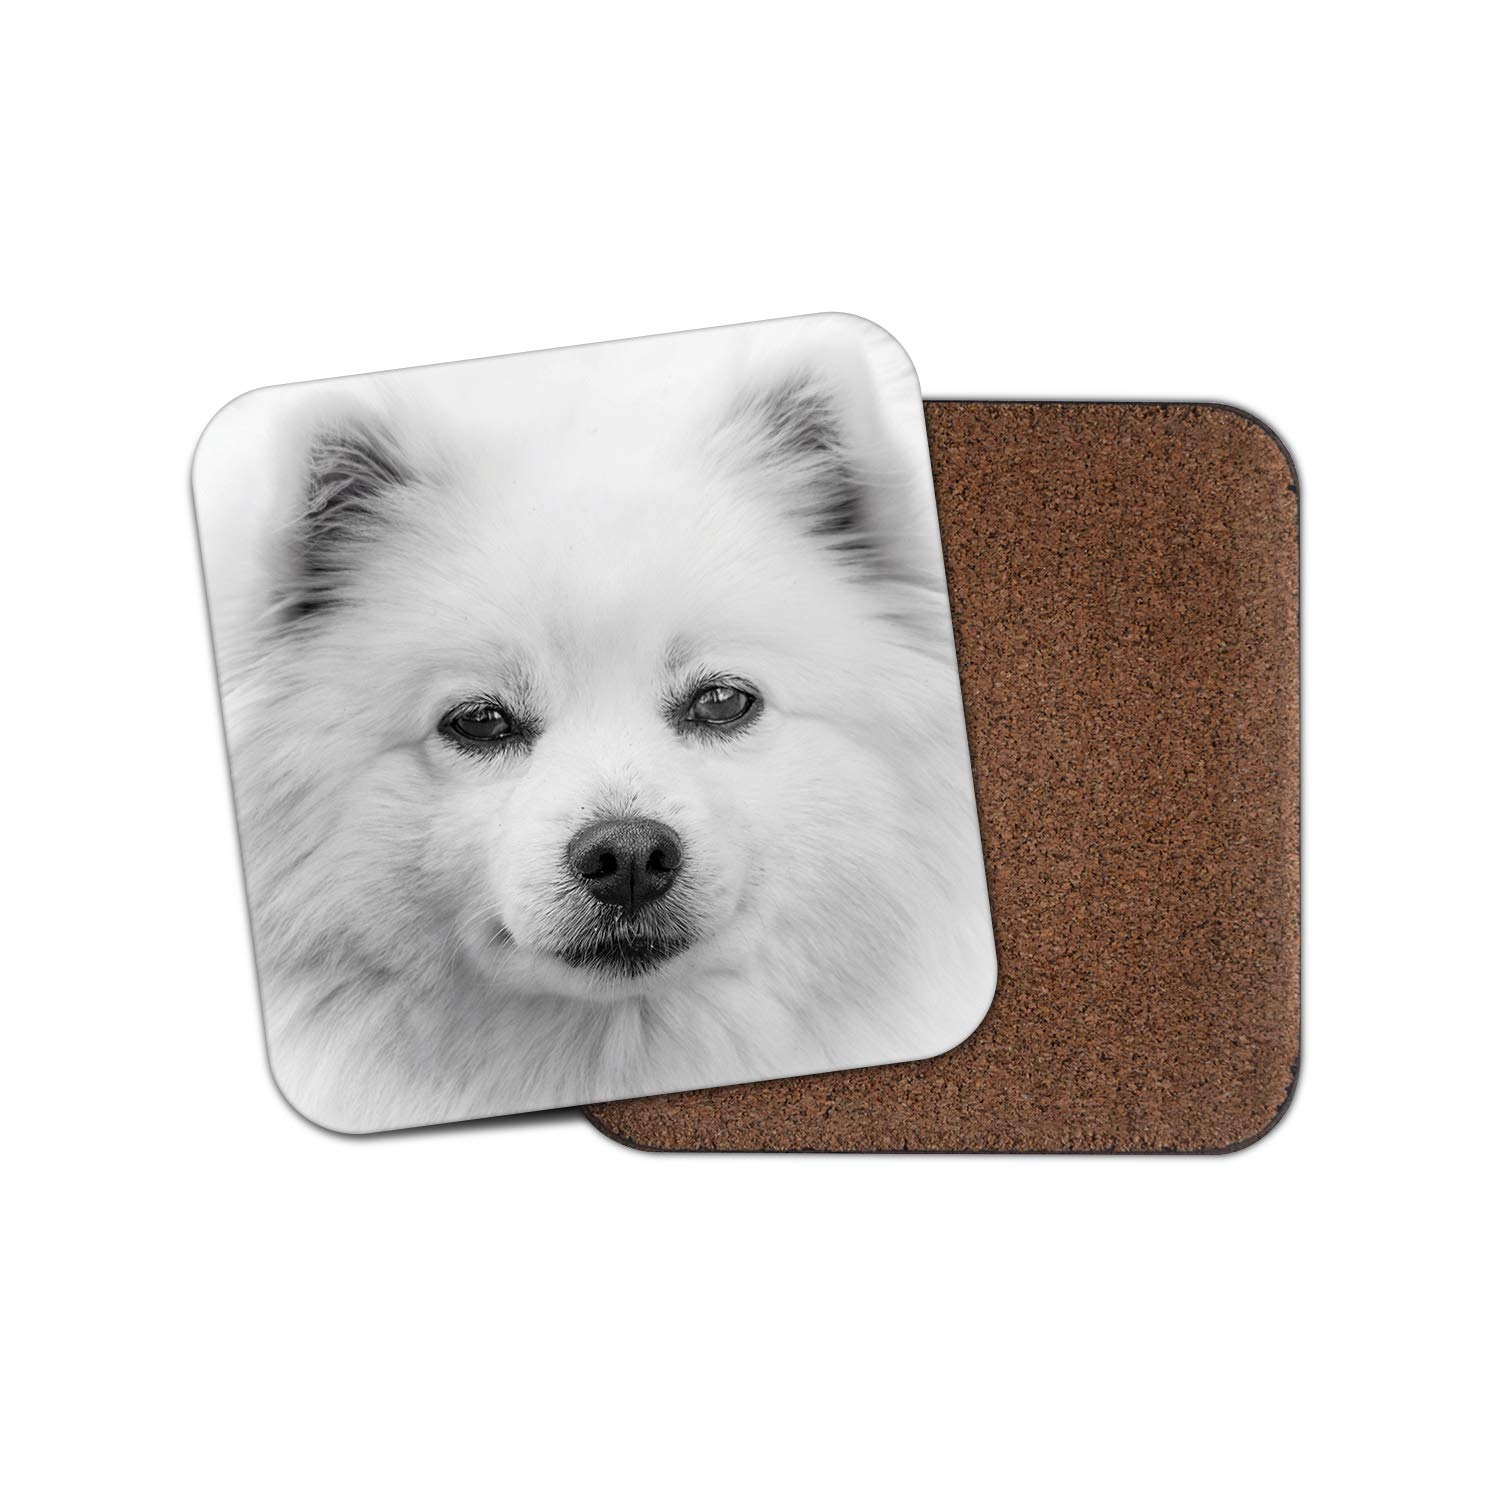 1 x American Eskimo Dog Coaster – Puppy Spitz White Cool Animals Pets Gift #15808